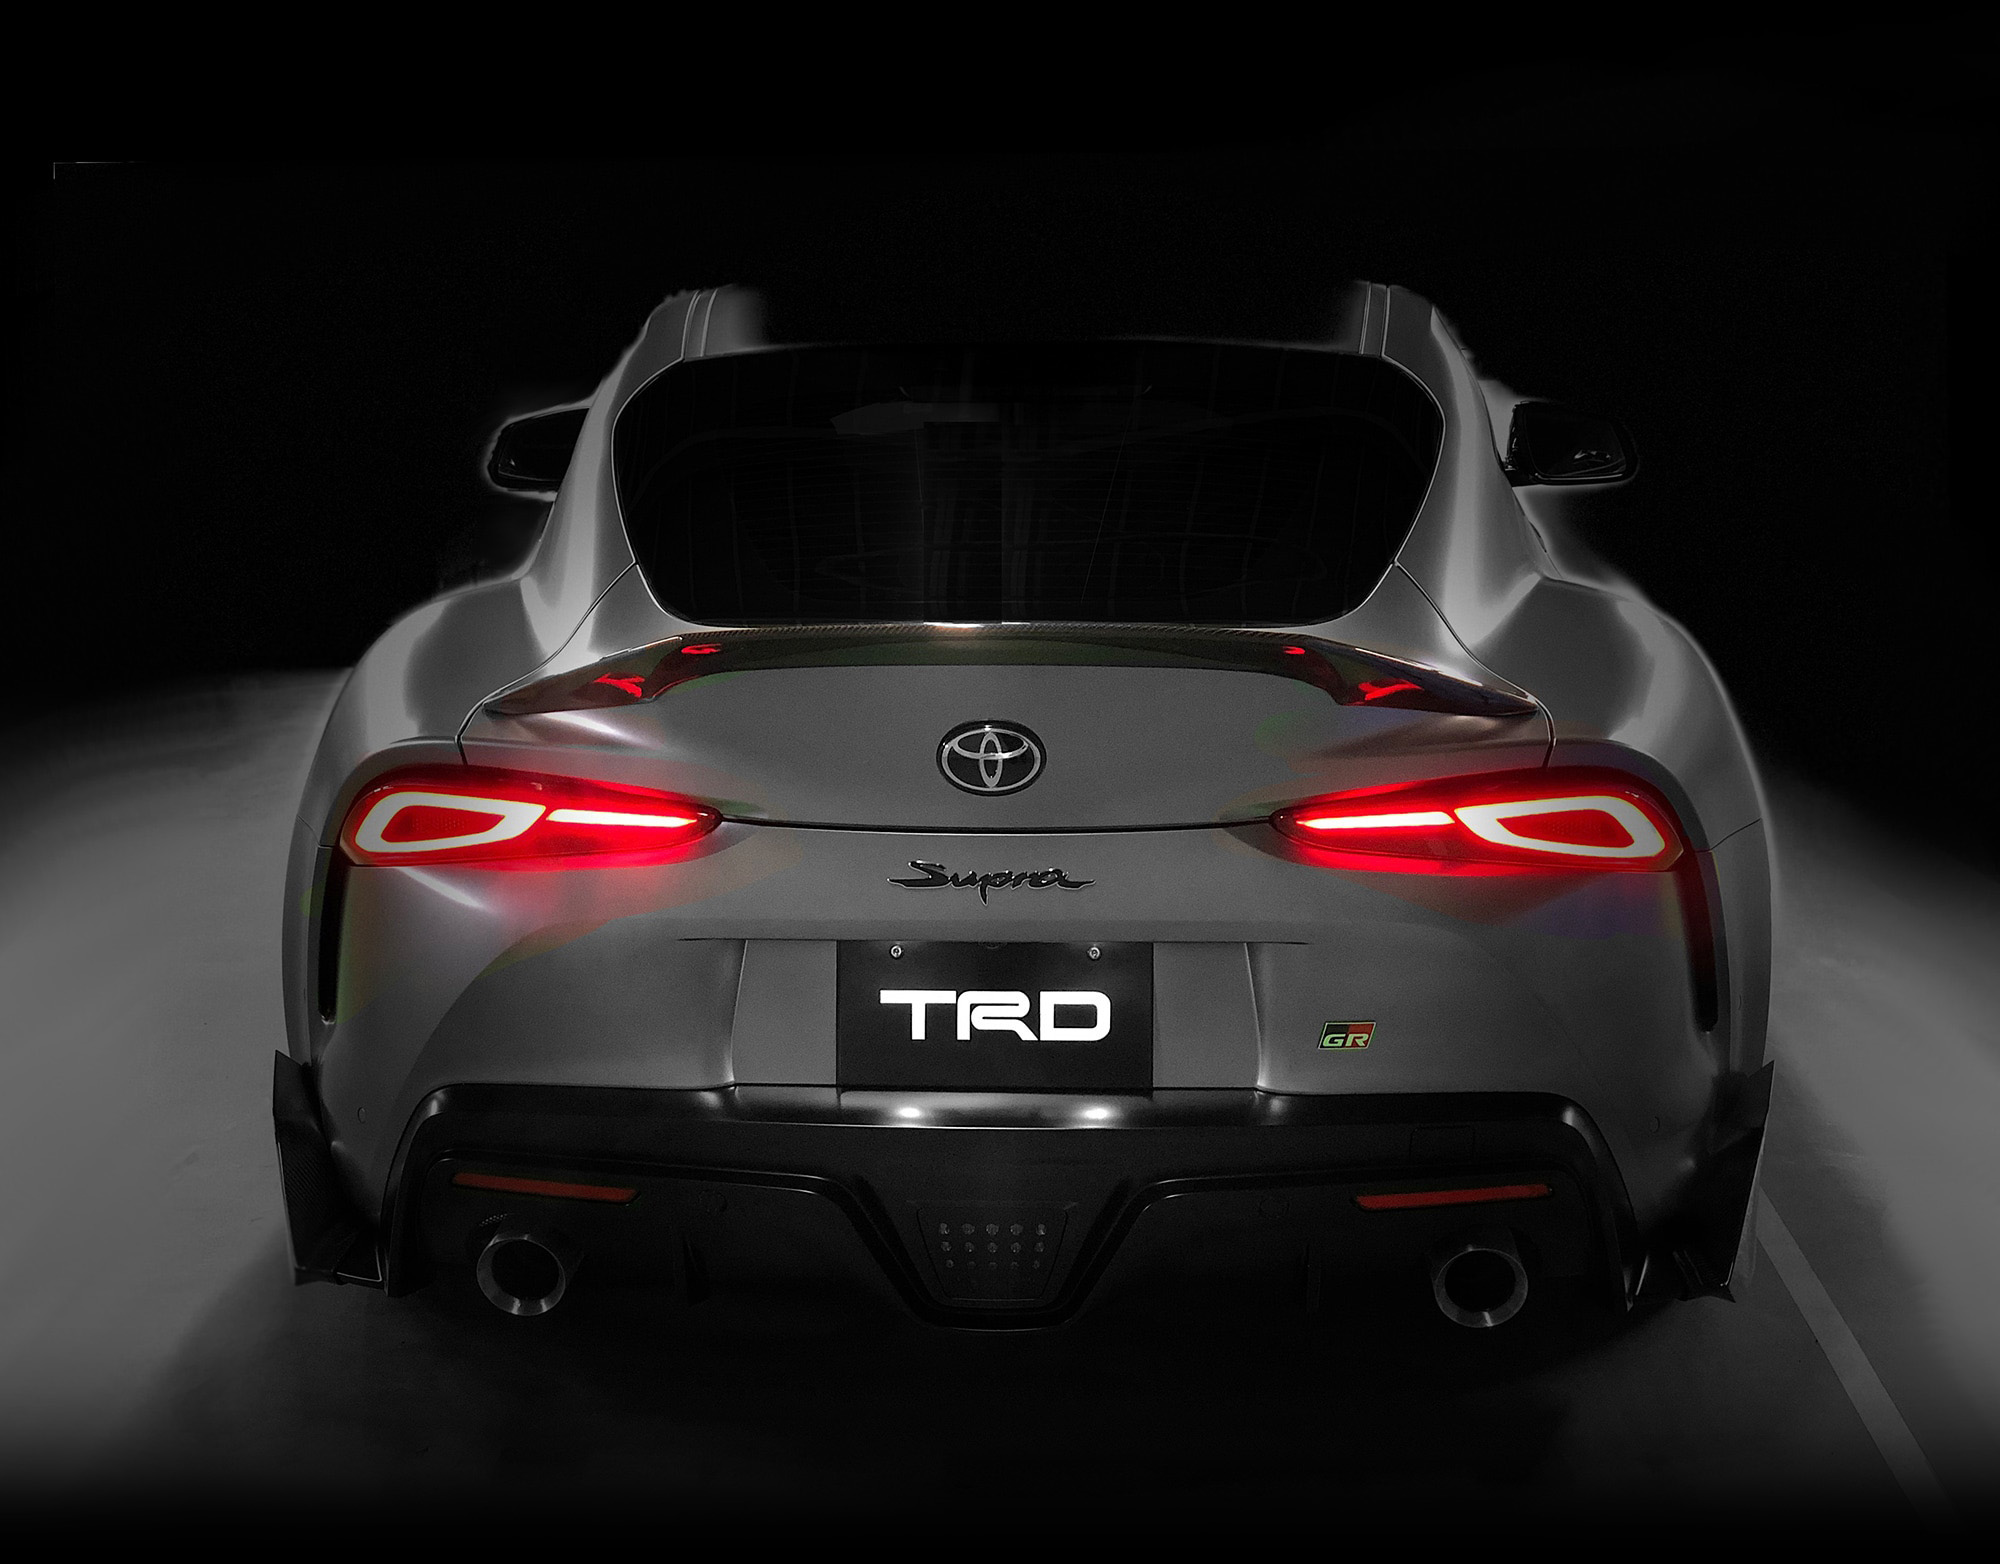 c903924e07 2020 Toyota Supra Gets the TRD Treatment, Lots of Carbon but No Extra Power